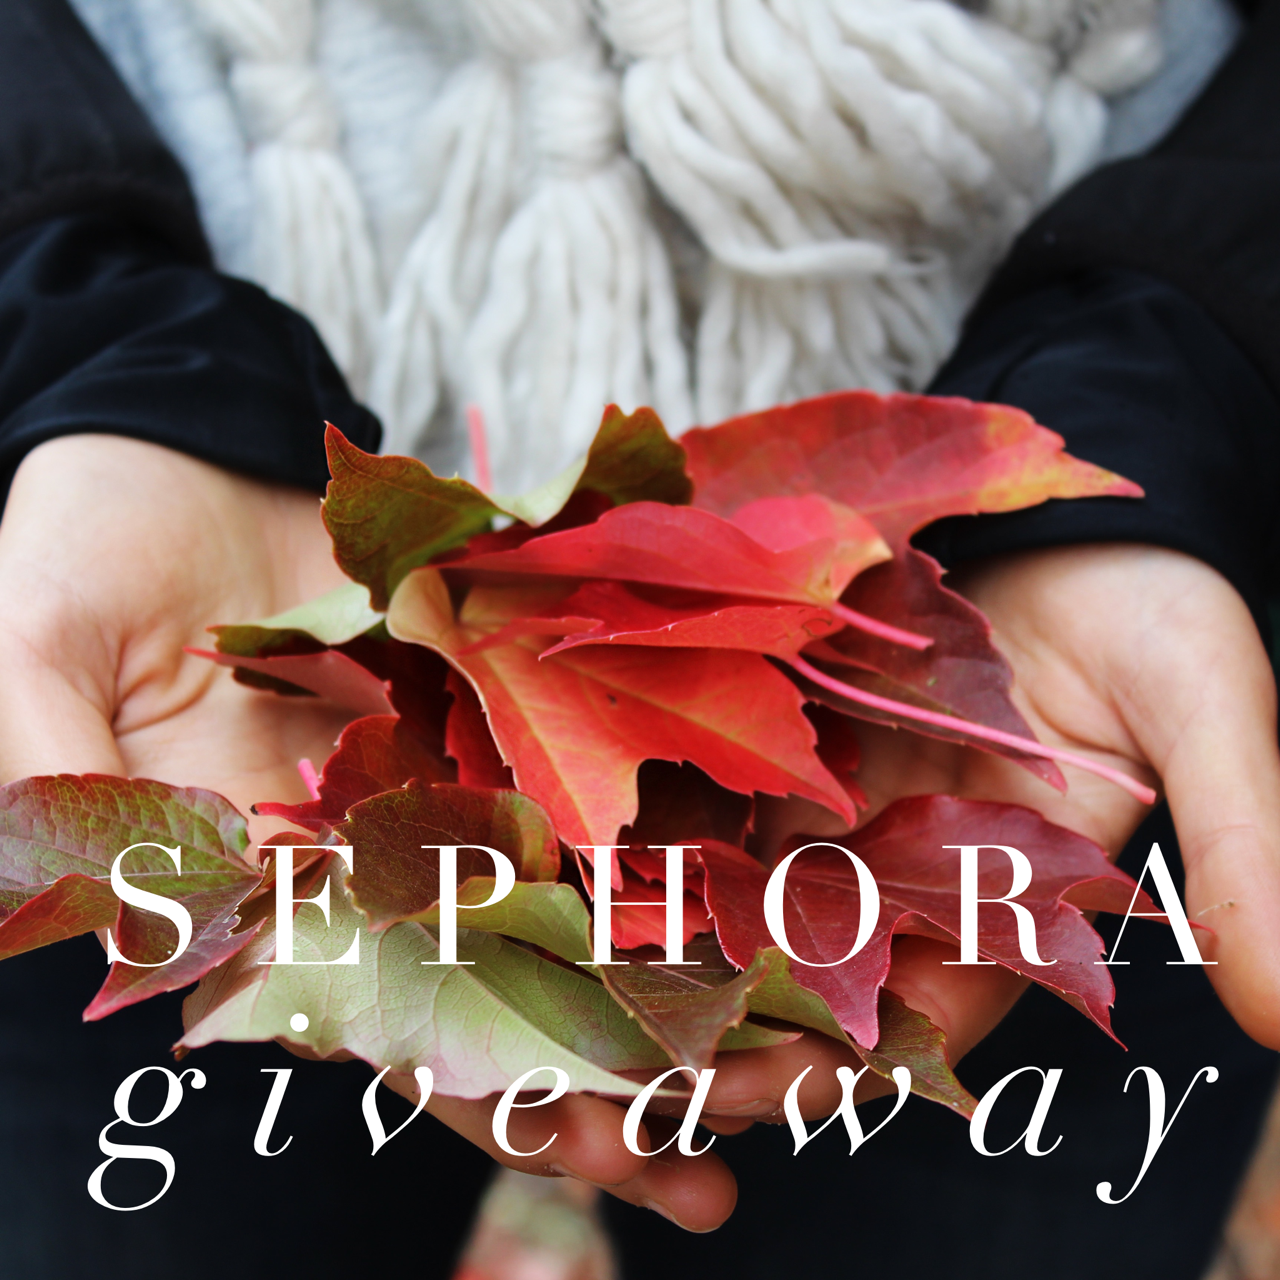 Five things I really want from Sephora & a Giveaway